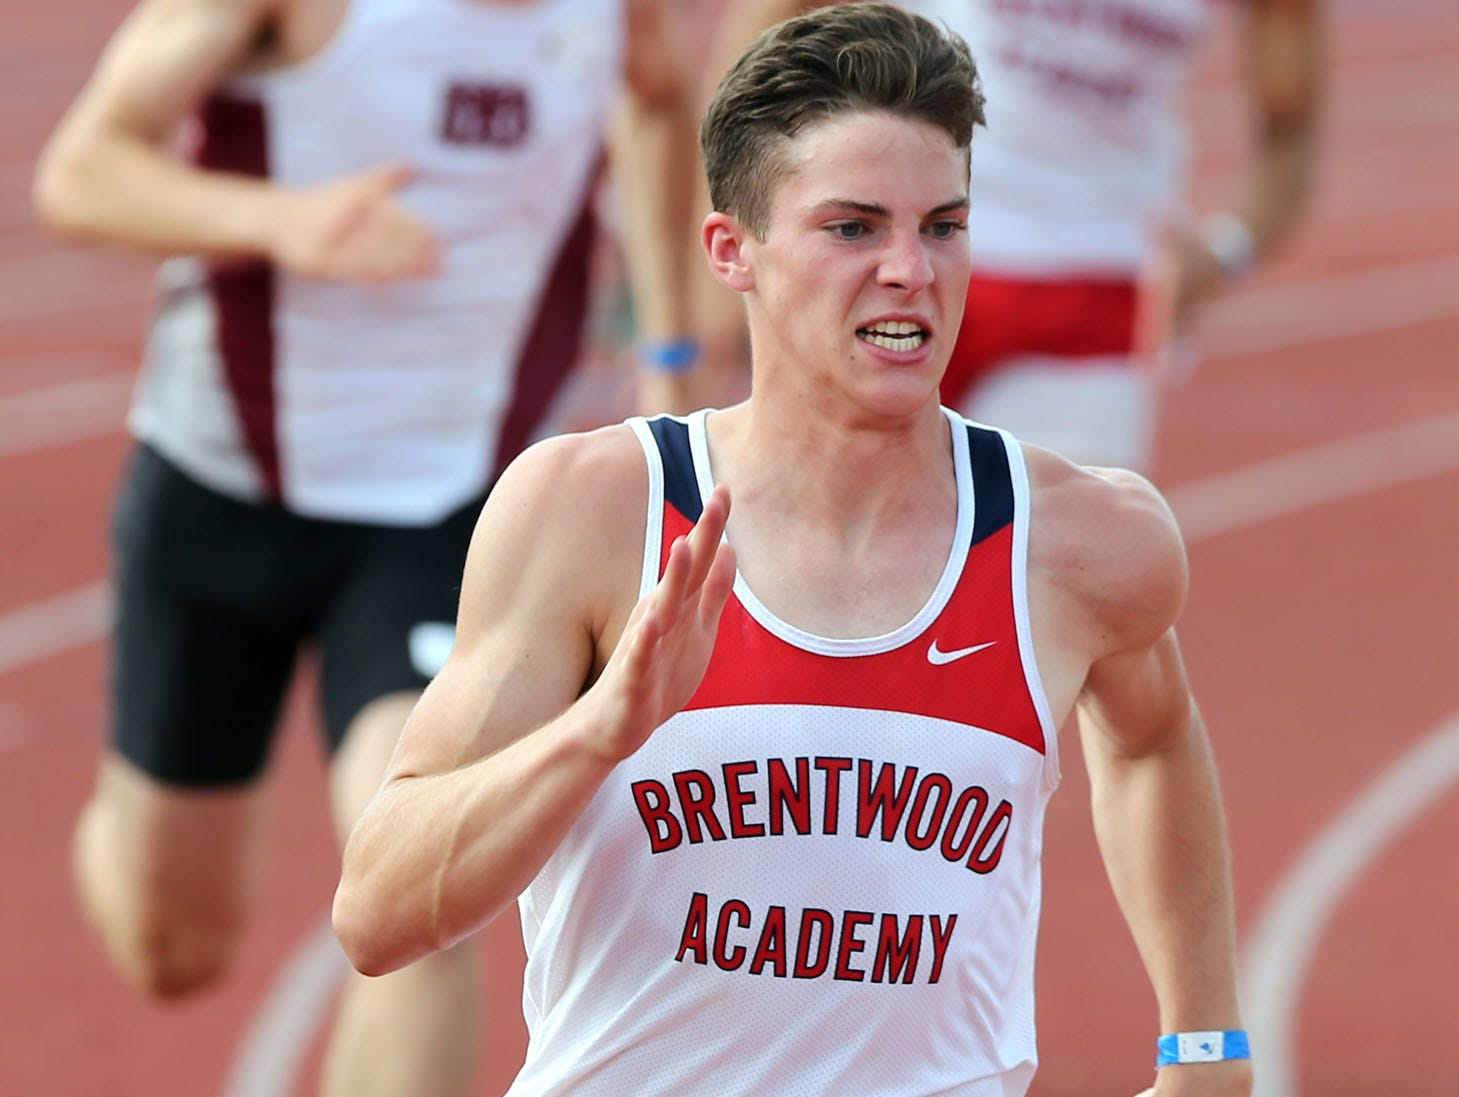 Brentwood Academy's George Patrick competes in the 400-meter dash during the DII decathlon. Patrick captured the title by almost 1,000 points.